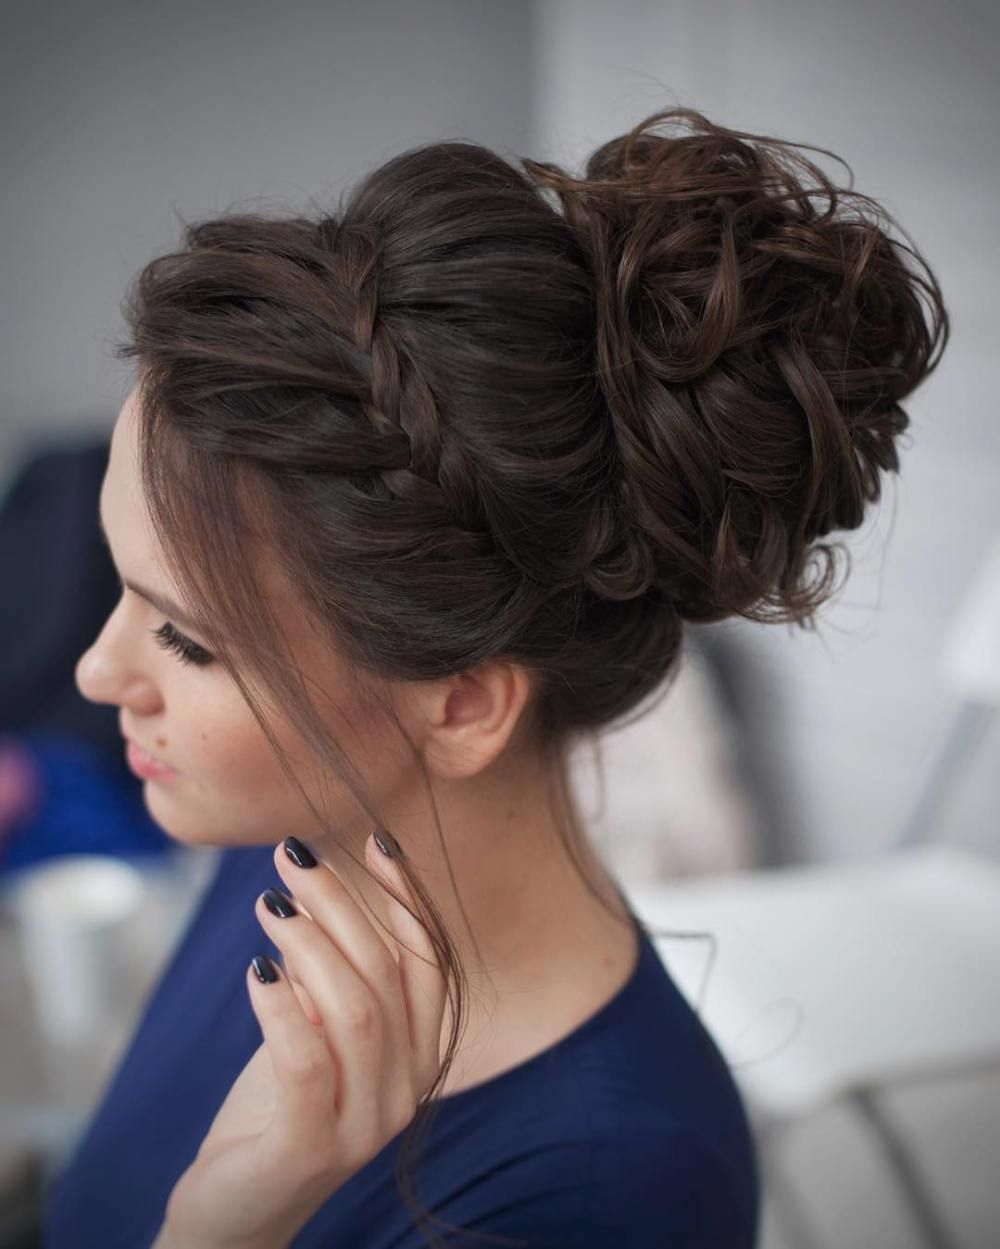 Frisuren Geburtstag 40 Most Delightful Prom Updos For Long Hair In 2018 Frisur